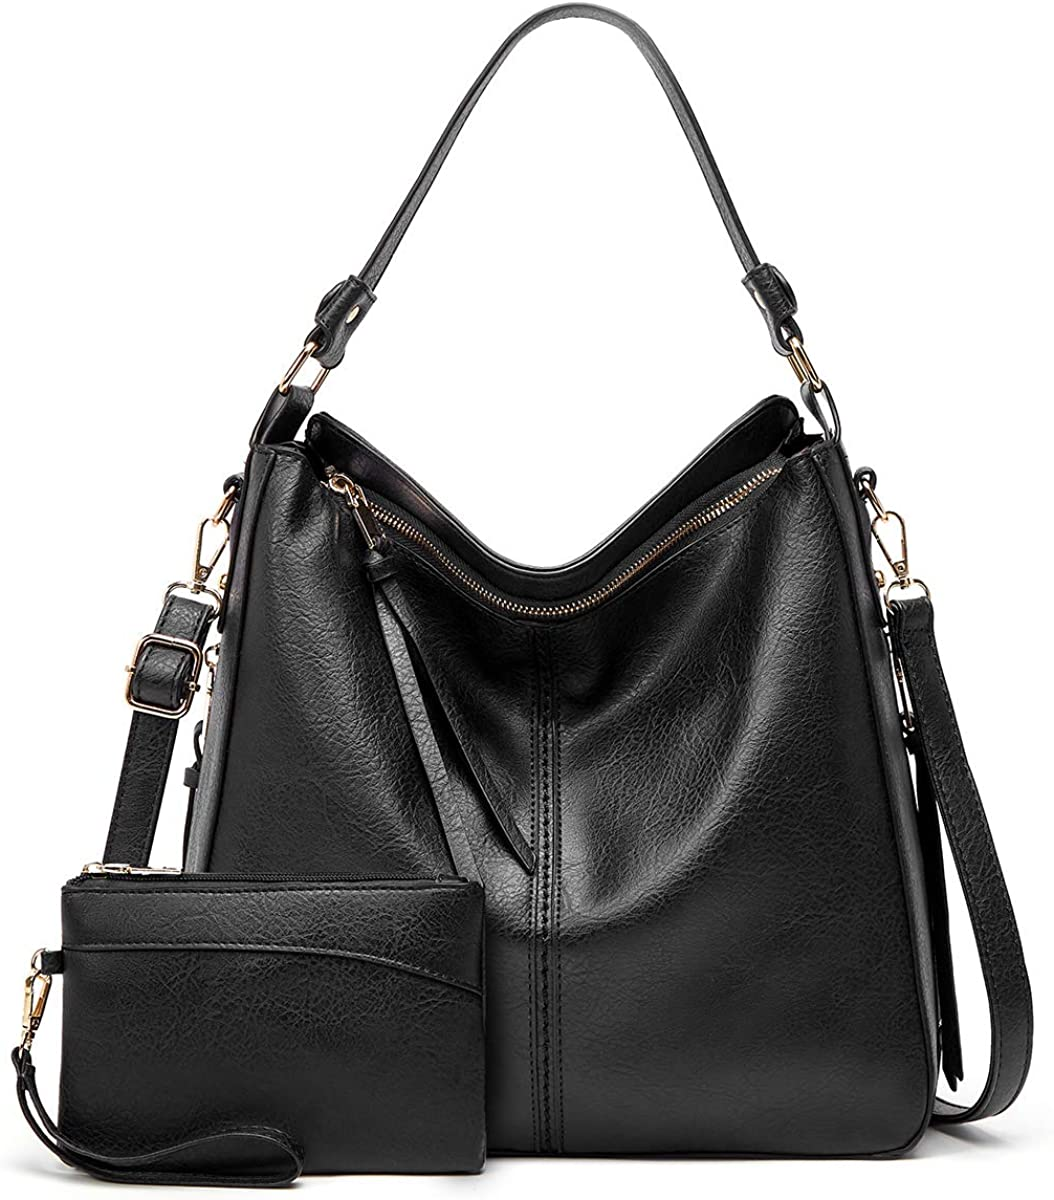 Hobo Fort Worth Mall Bags Regular dealer for Women Large Crossbody Purses and Leather Bag Faux